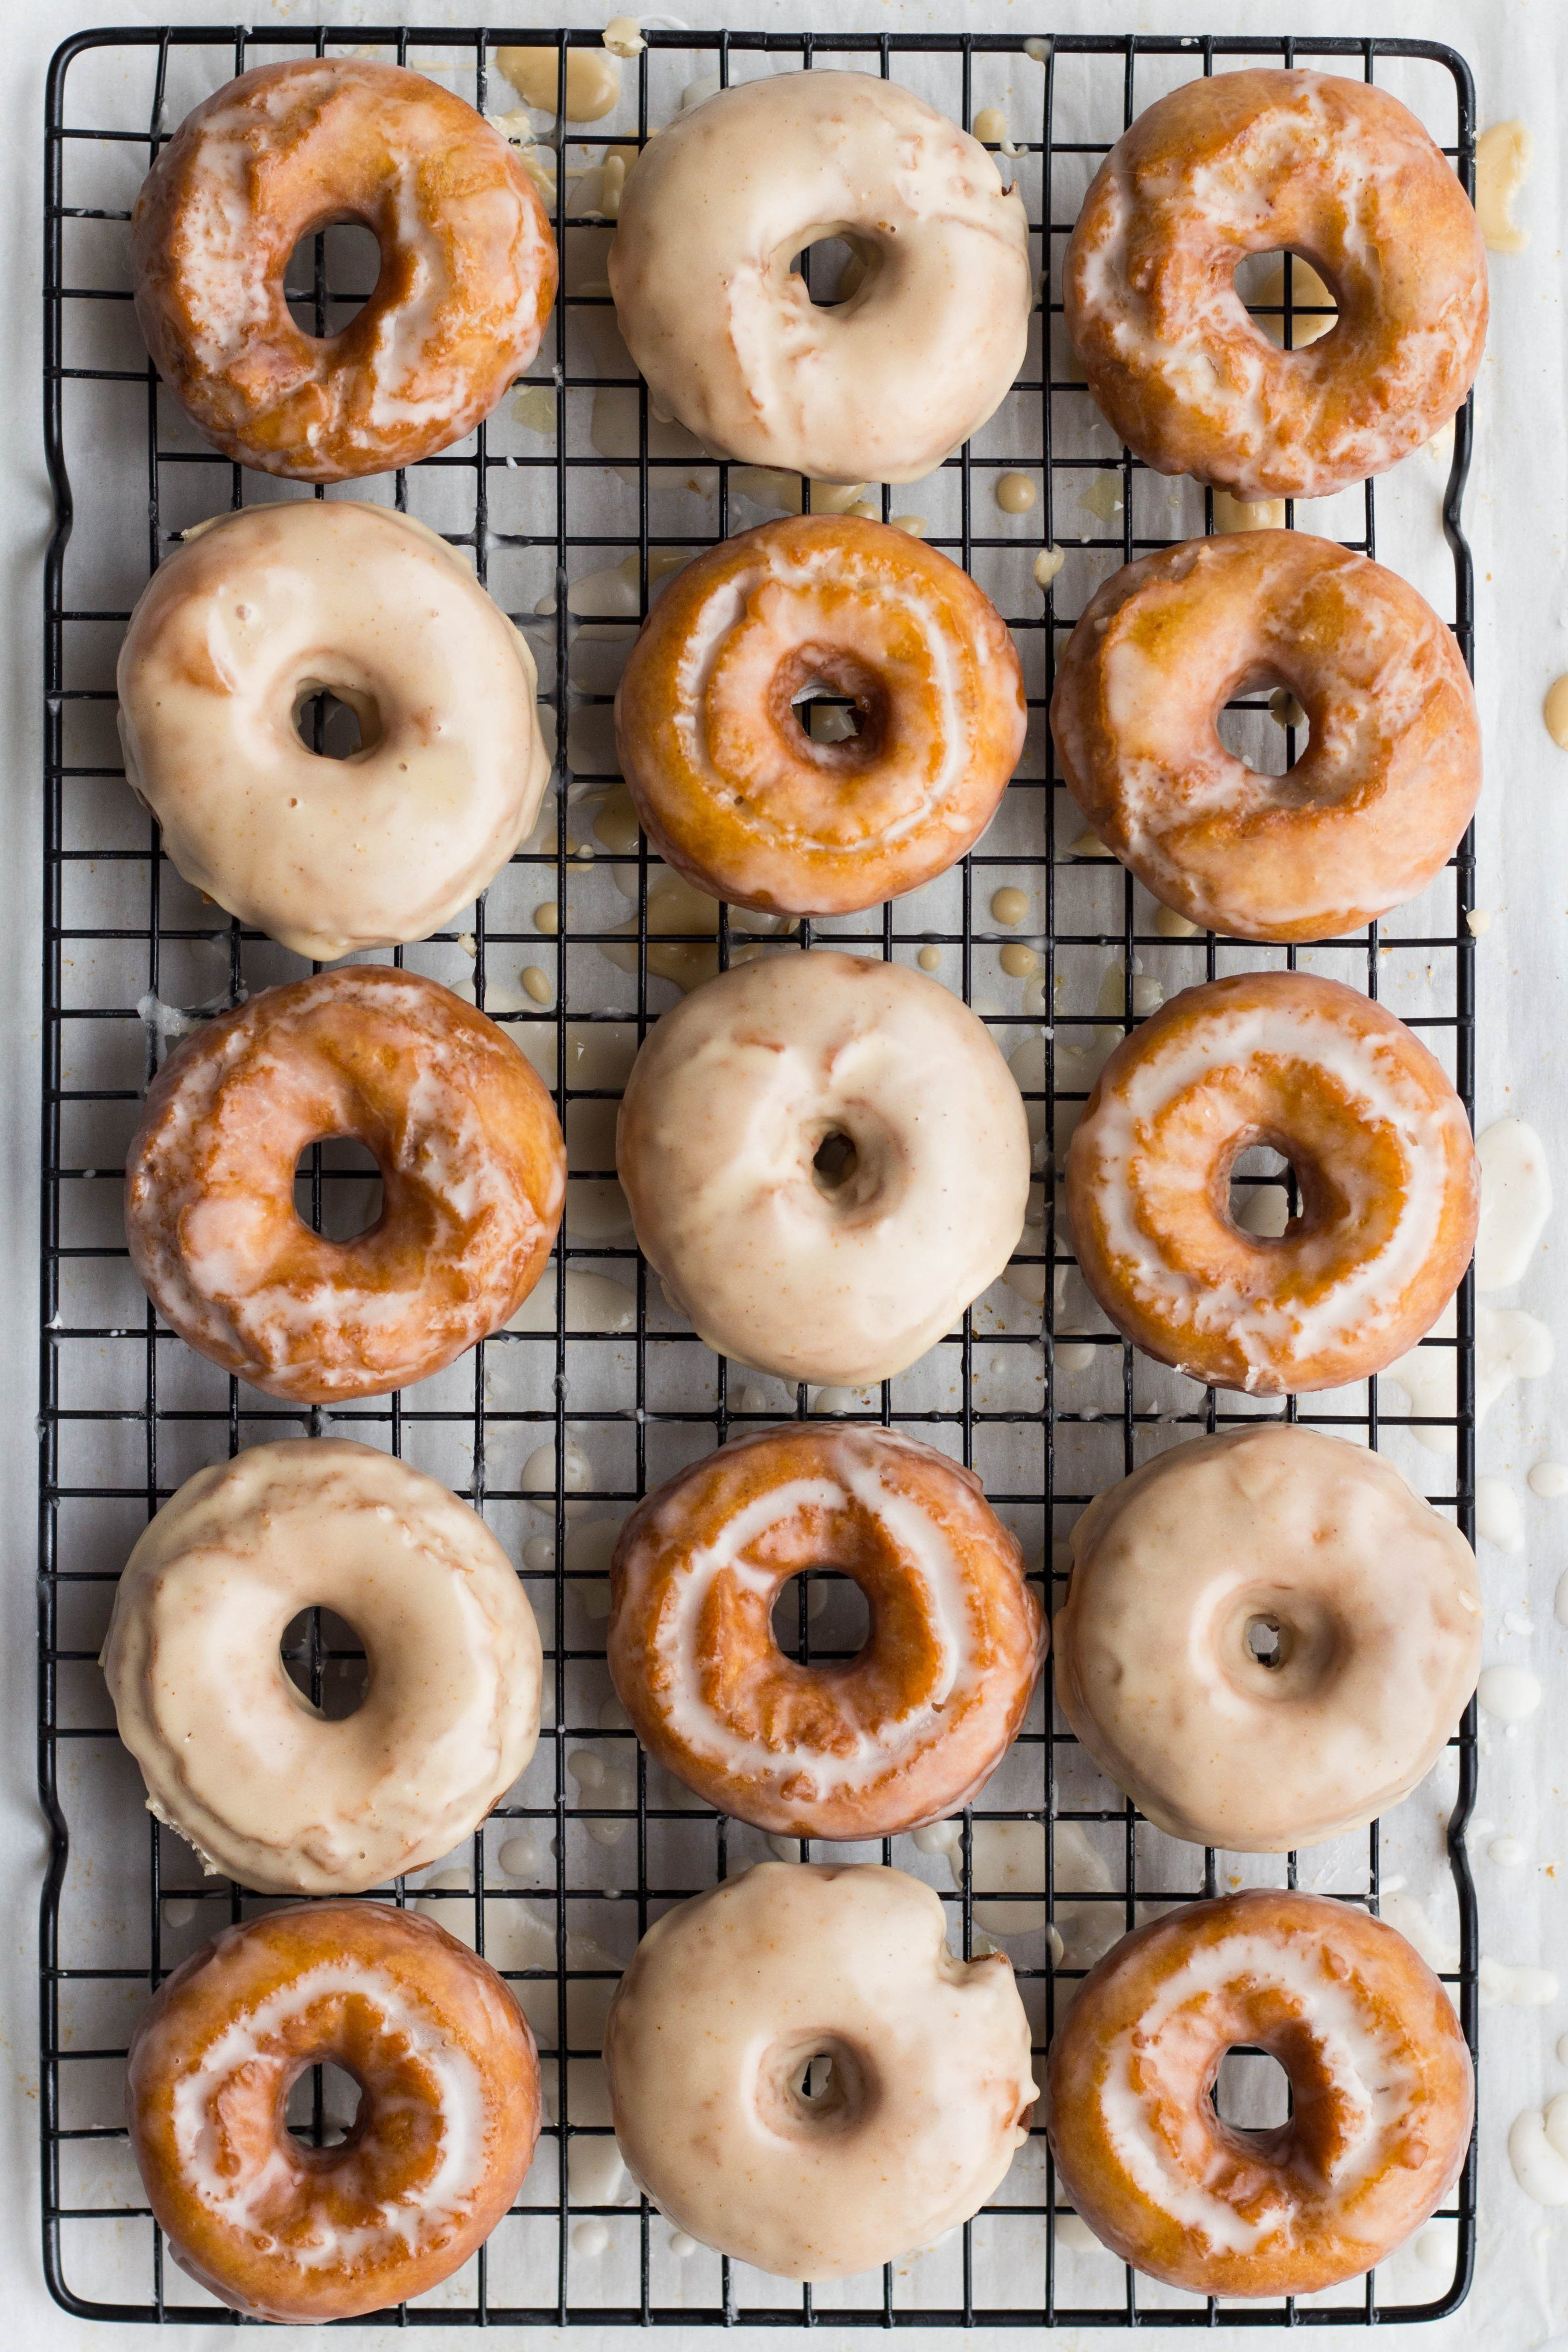 I Will Never Say No To A Doughnut I Just Love Them And You Would Be Hard Pressed To Find A Doughnut Flavour Pumpkin Spice Cake Sour Cream Donut Doughnut Cake